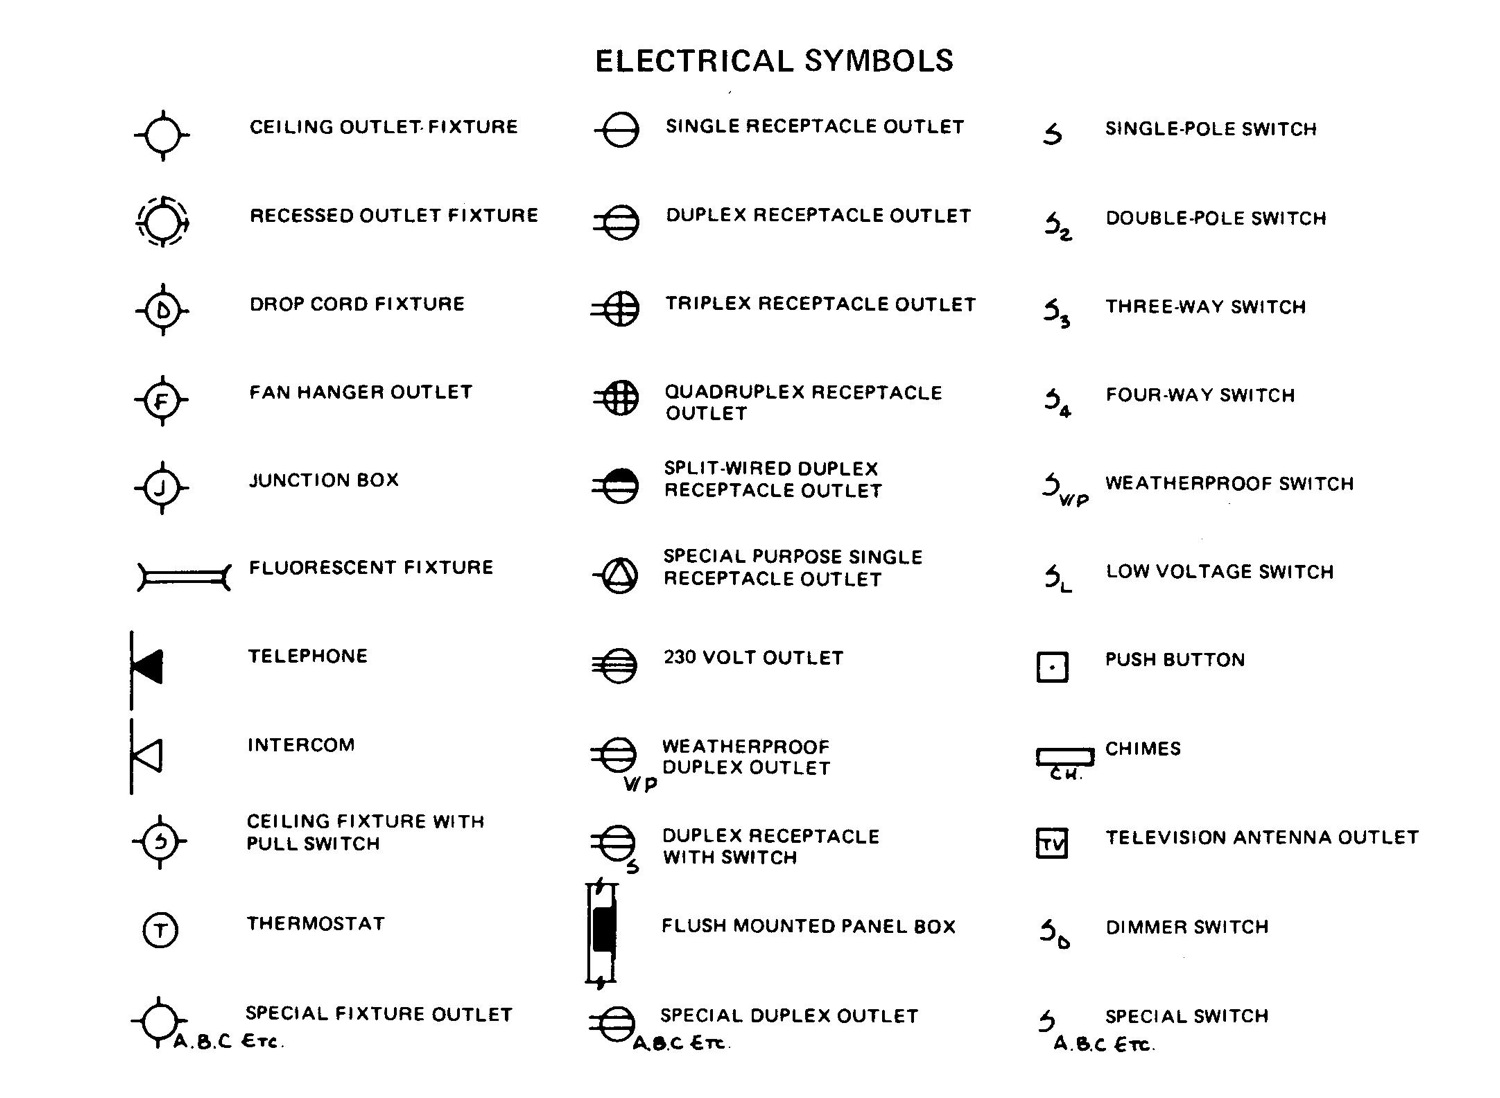 Wall Socket Wiring Diagram Uk. Rj45 Cat5 Related Keywords Amp ...